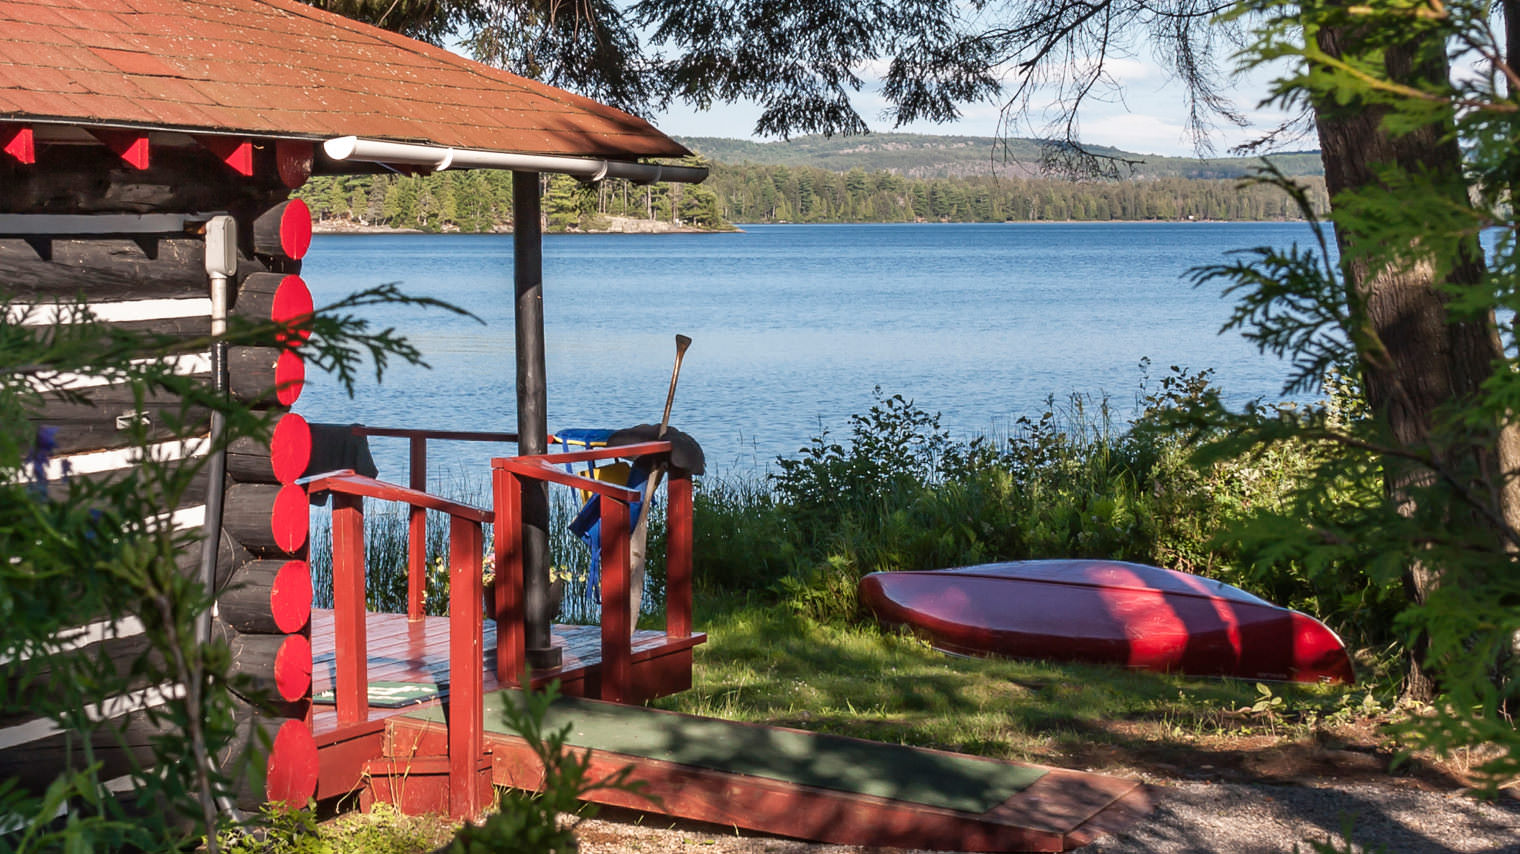 Where to stay in Algonquin Park - Log cabin Killarney Lodge